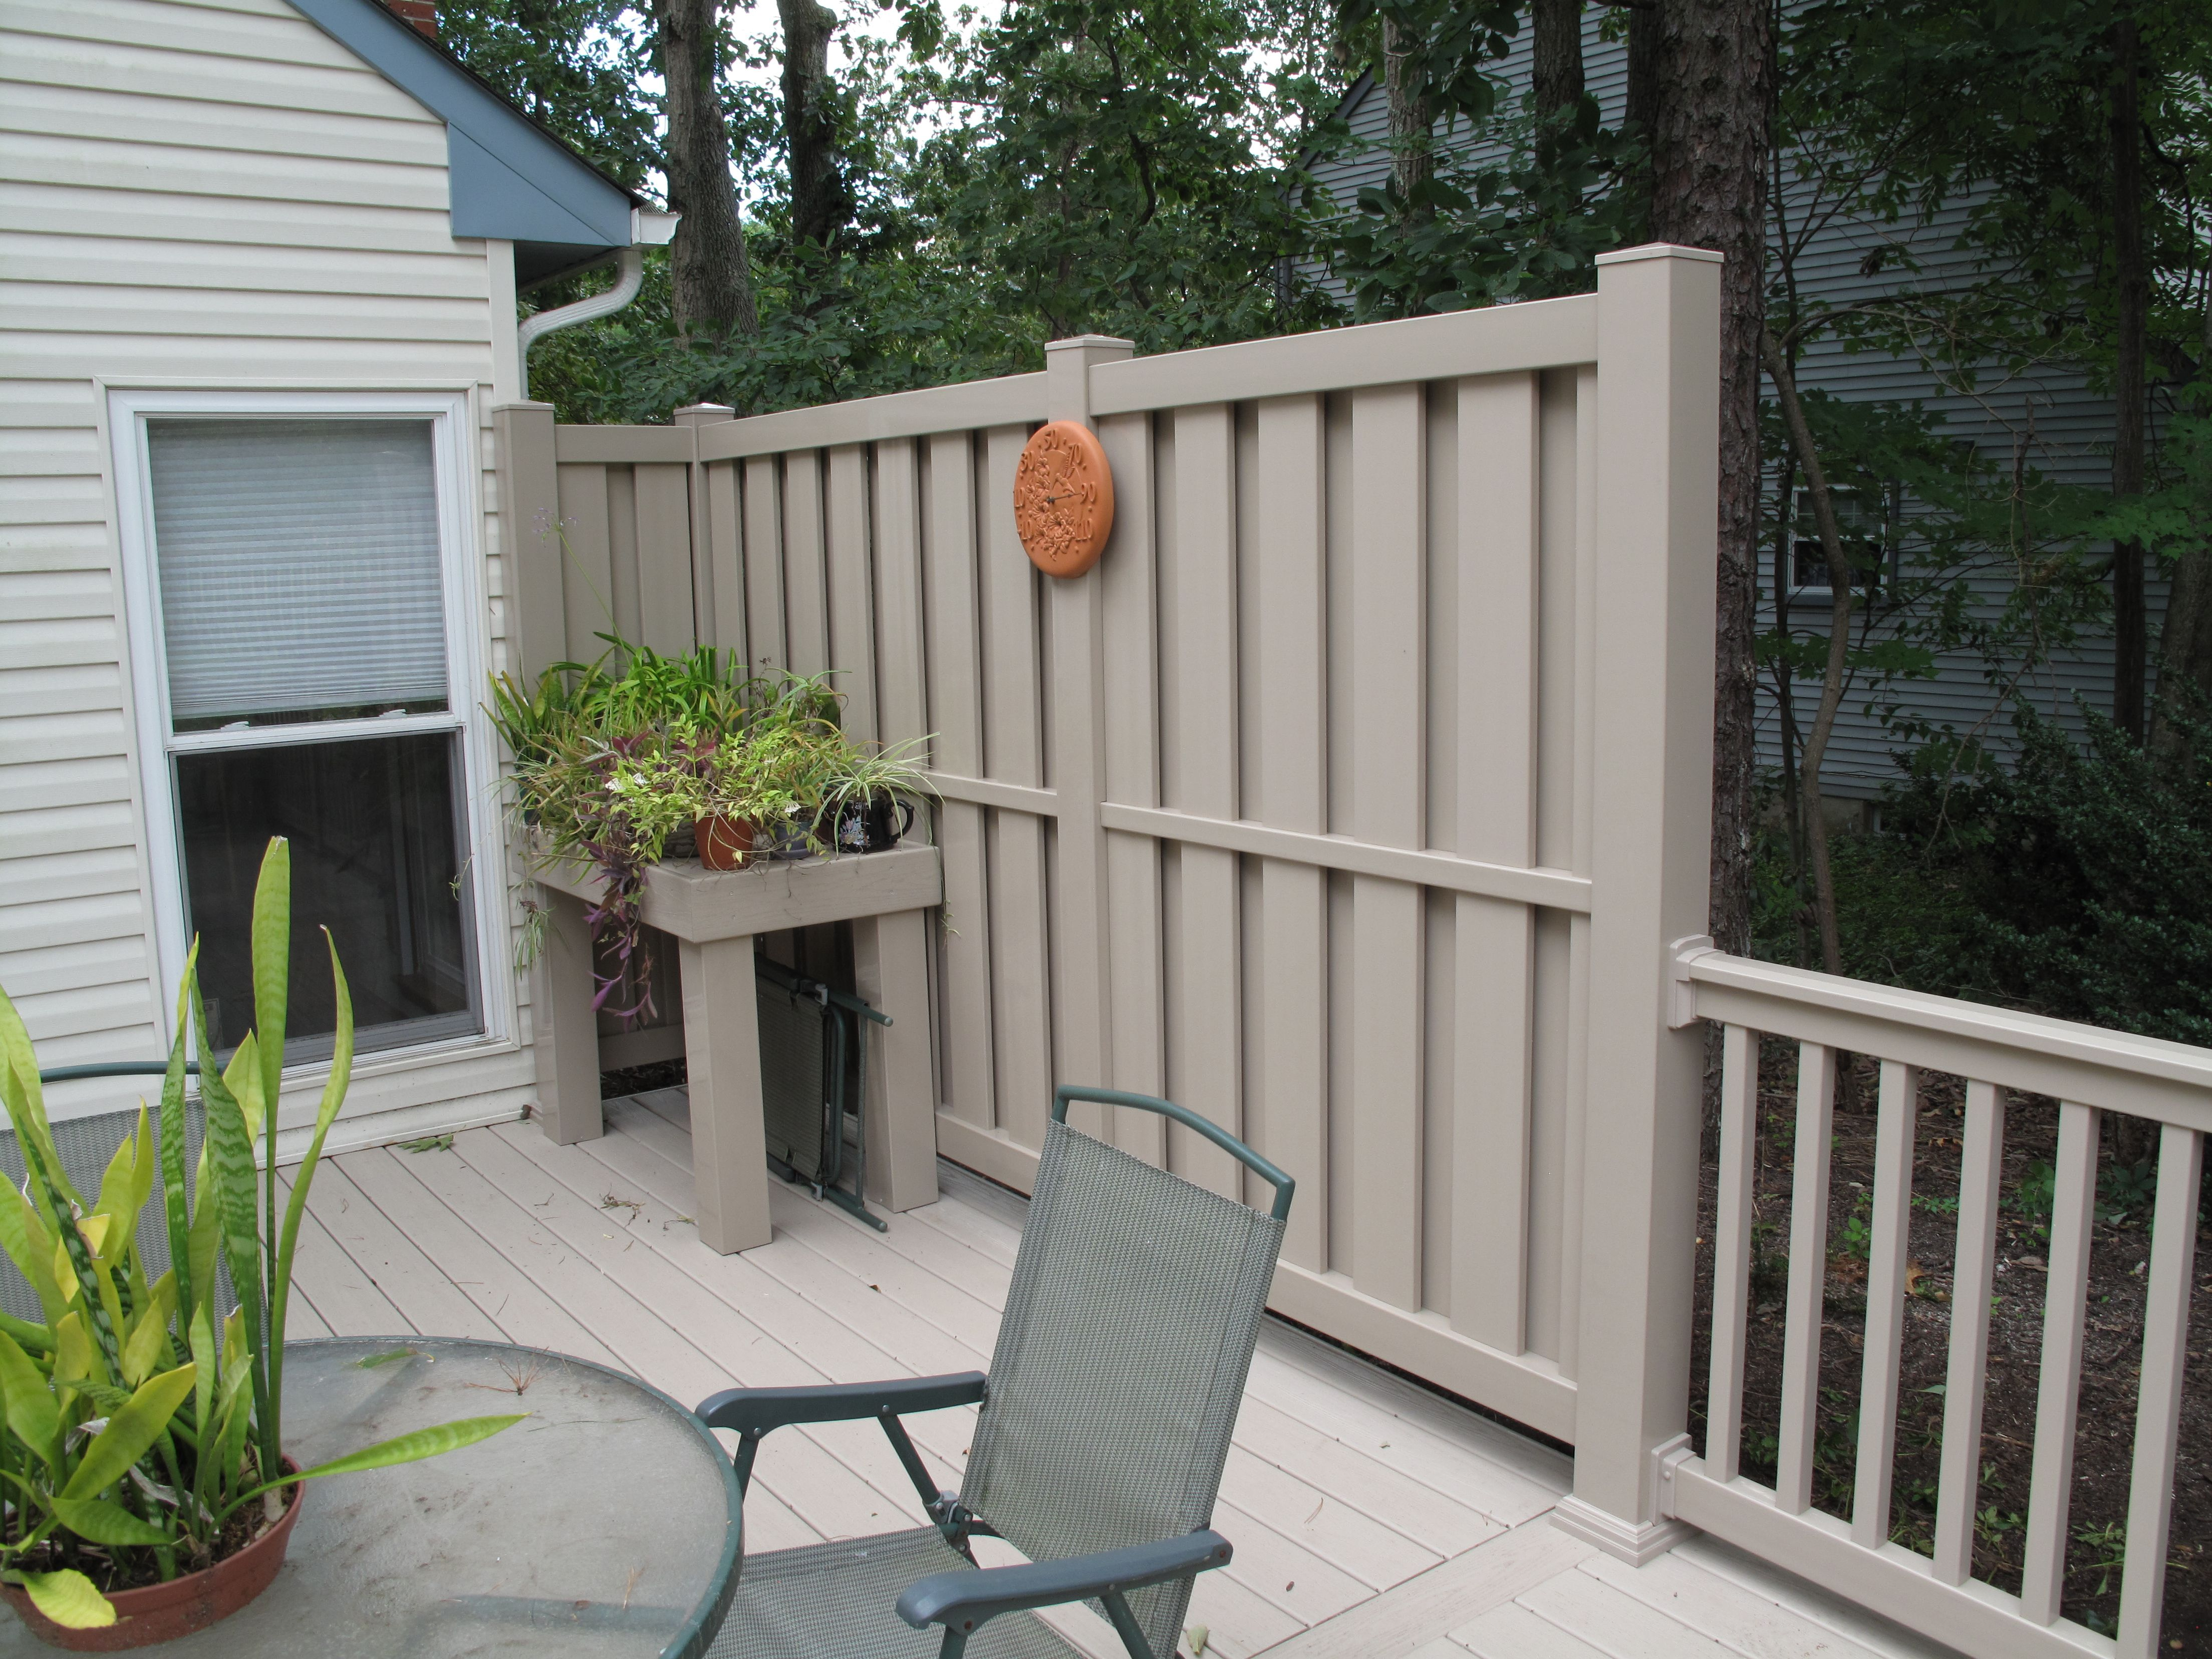 South jersey for sale vinyl fence craigslist fence this tan vinyl shadowbox fence is done using great railing products contact us baanklon Choice Image